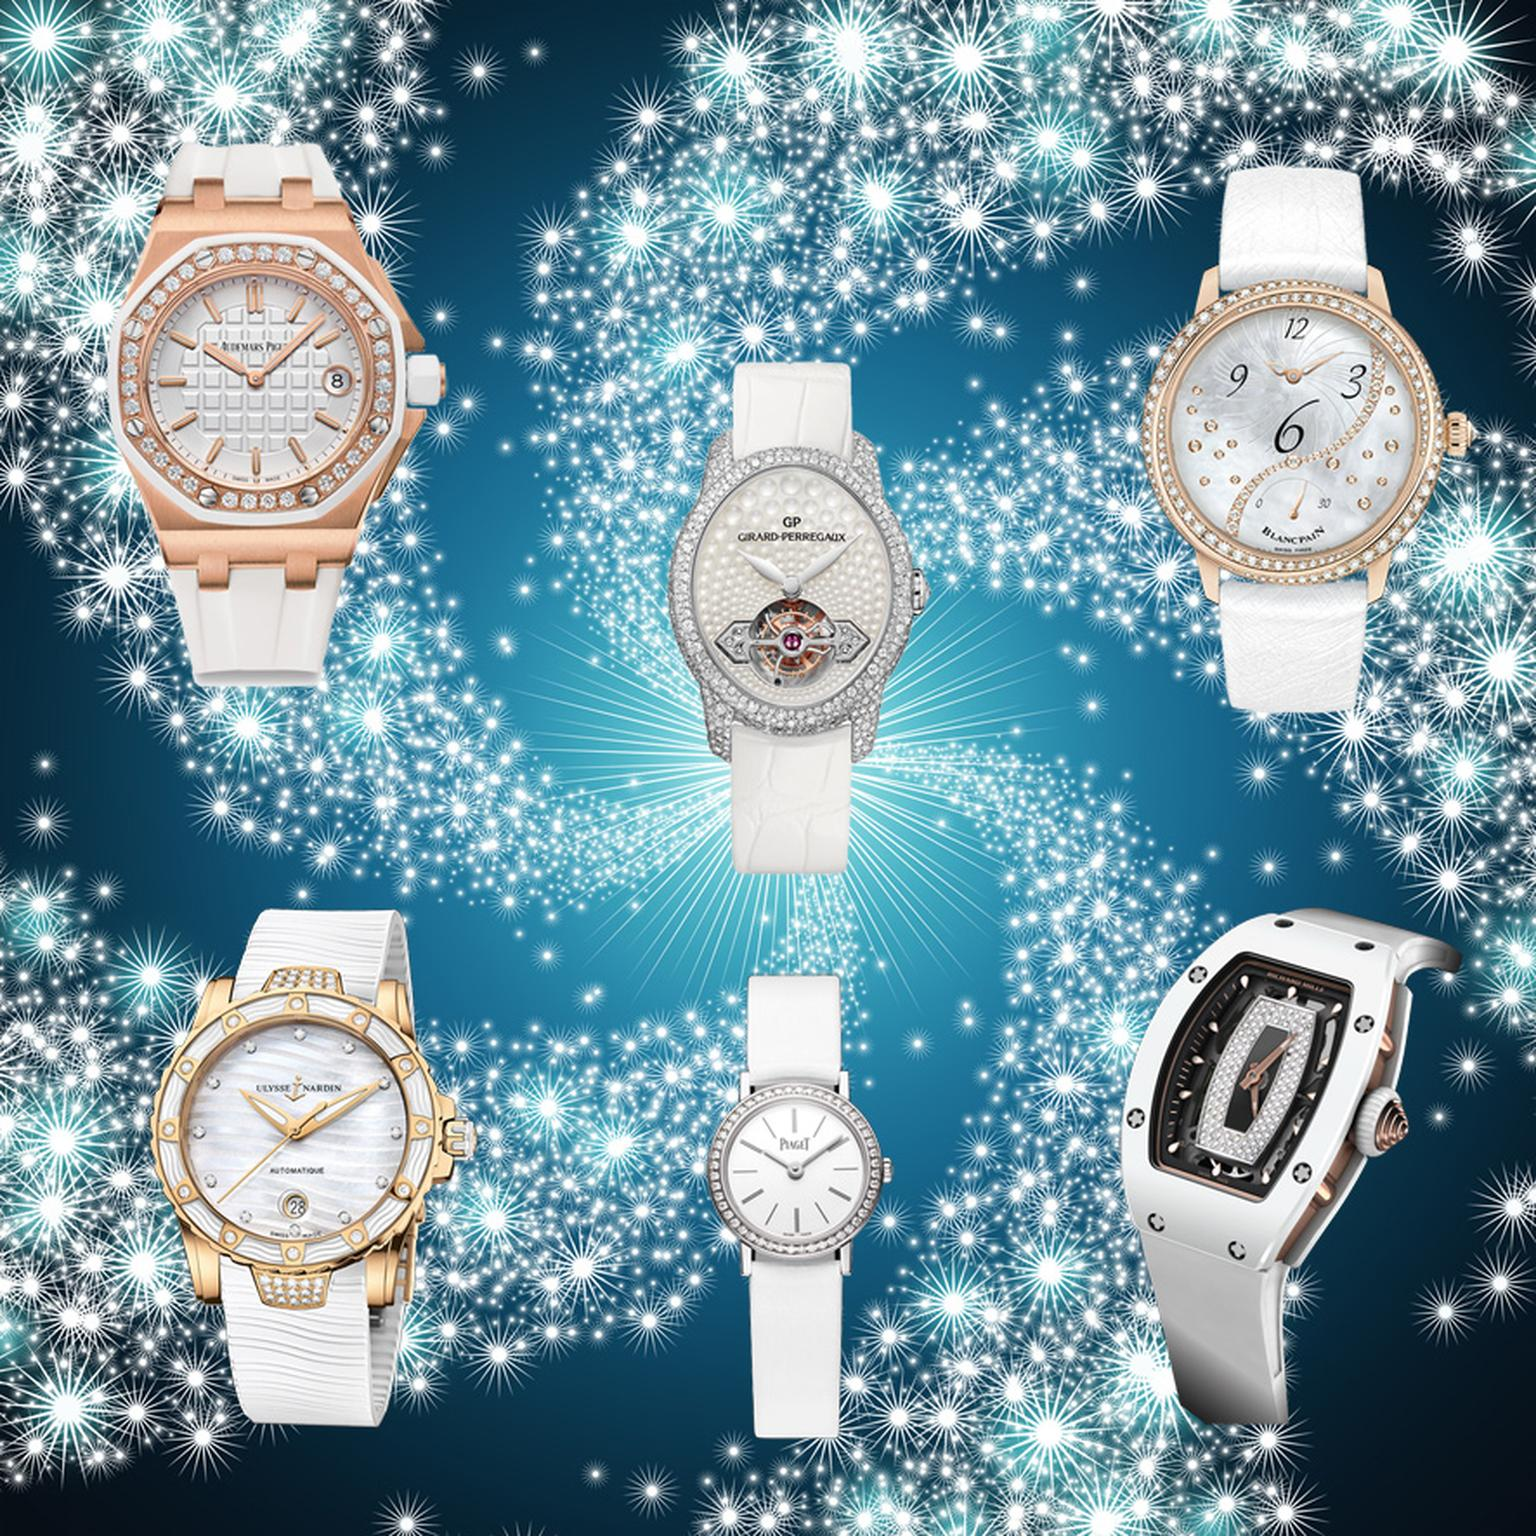 The trend for white on white in haute couture has had a lasting repercussion in the watch world, especially with these watches from Audemars Piguet, Girard-Perregaux, Blancpain, Ulysse Nardin, Piaget and Richard Mille.